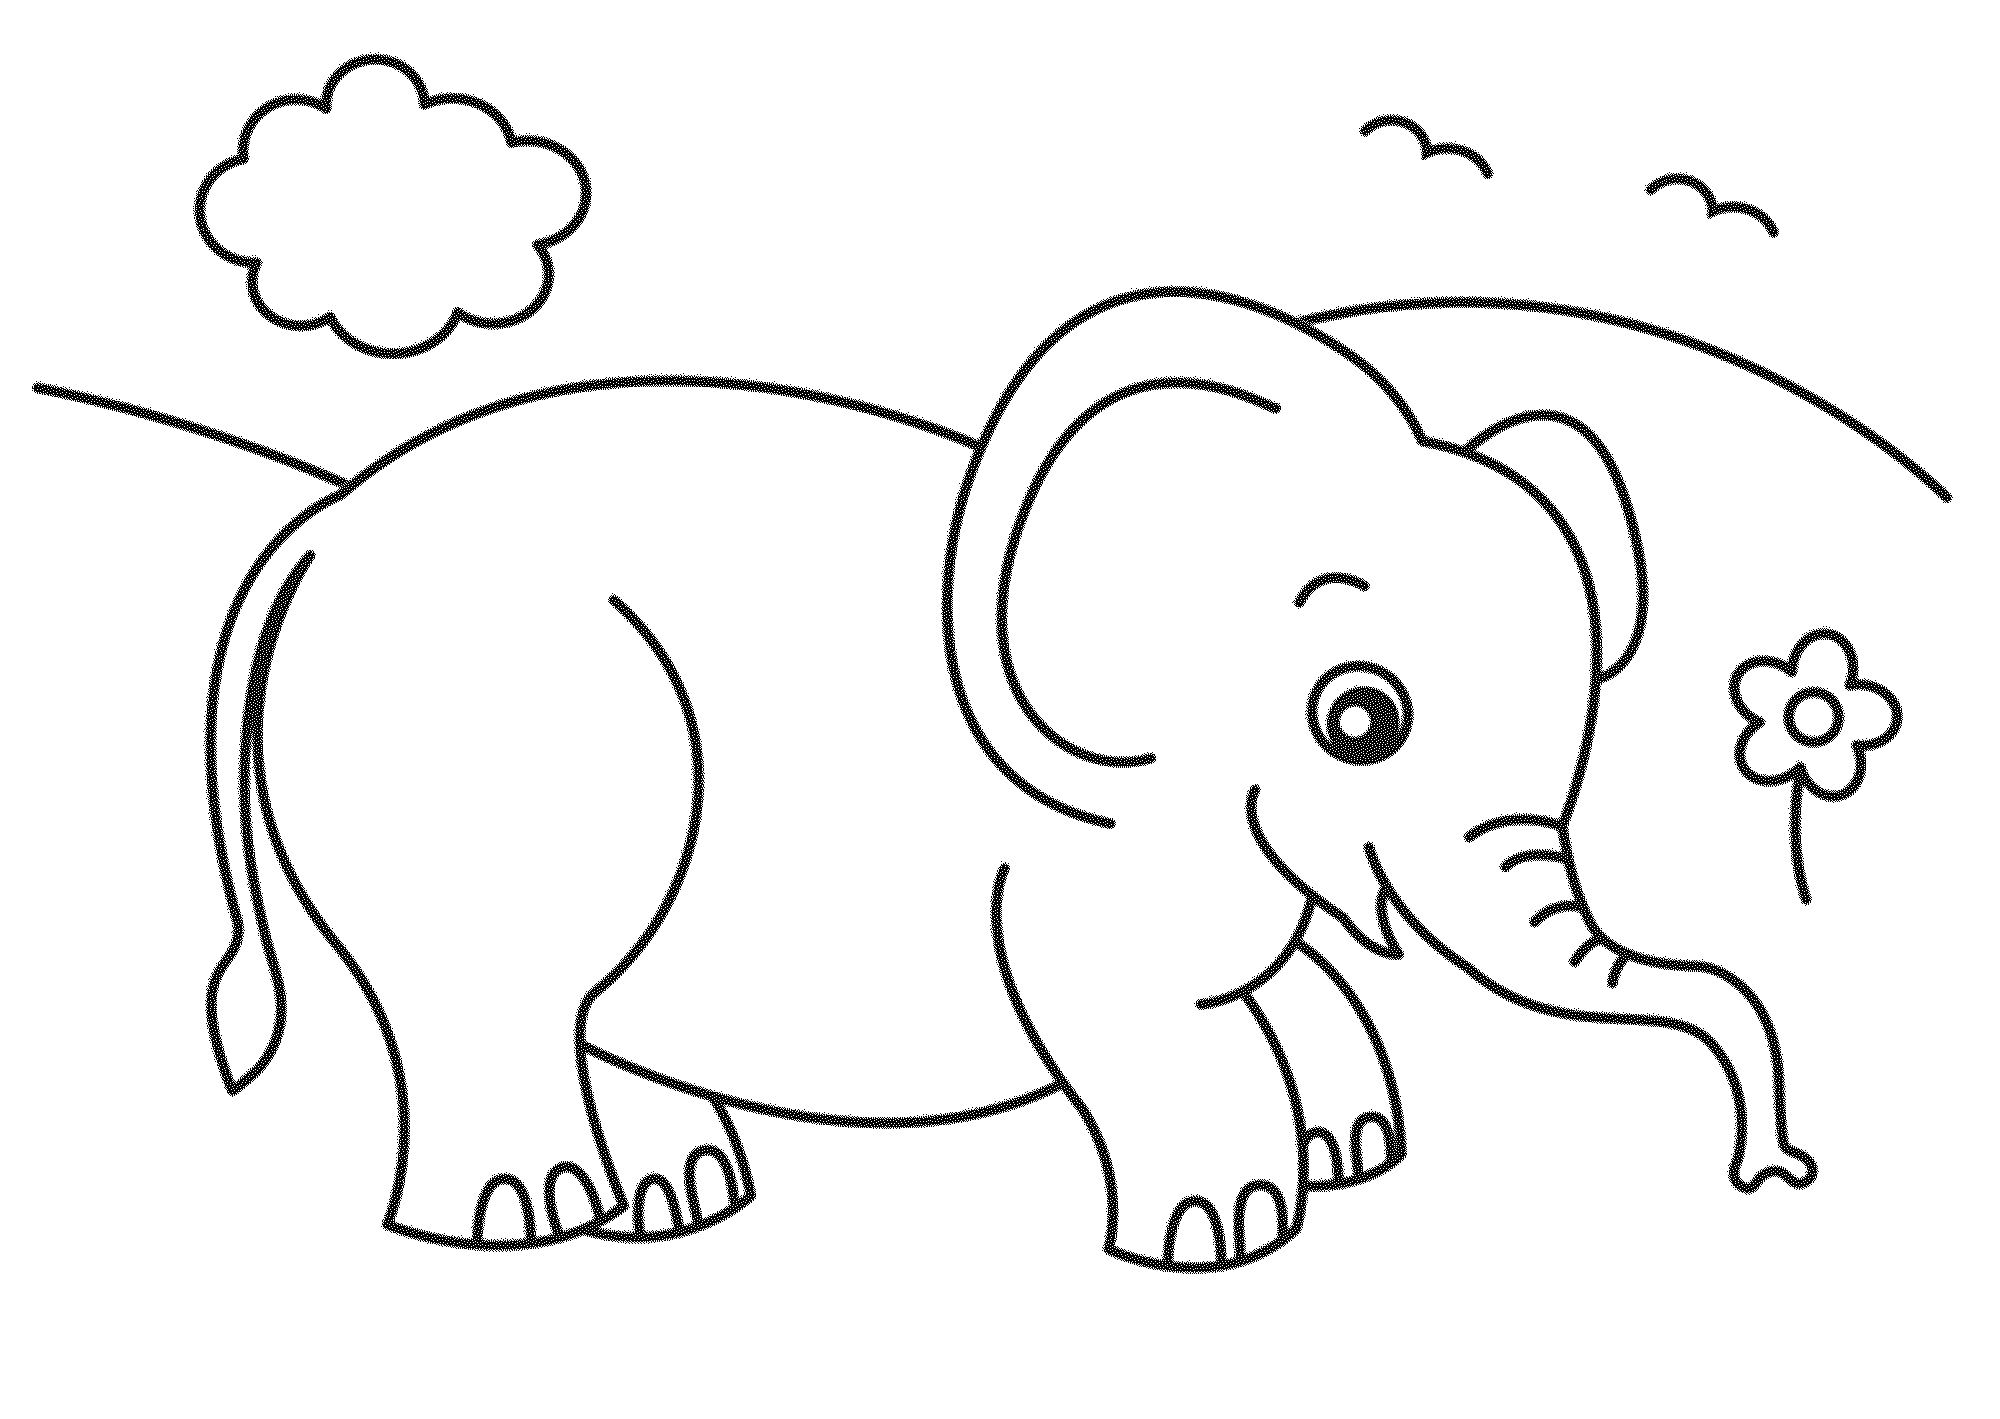 colouring picture of elephant print download teaching kids through elephant coloring colouring elephant of picture